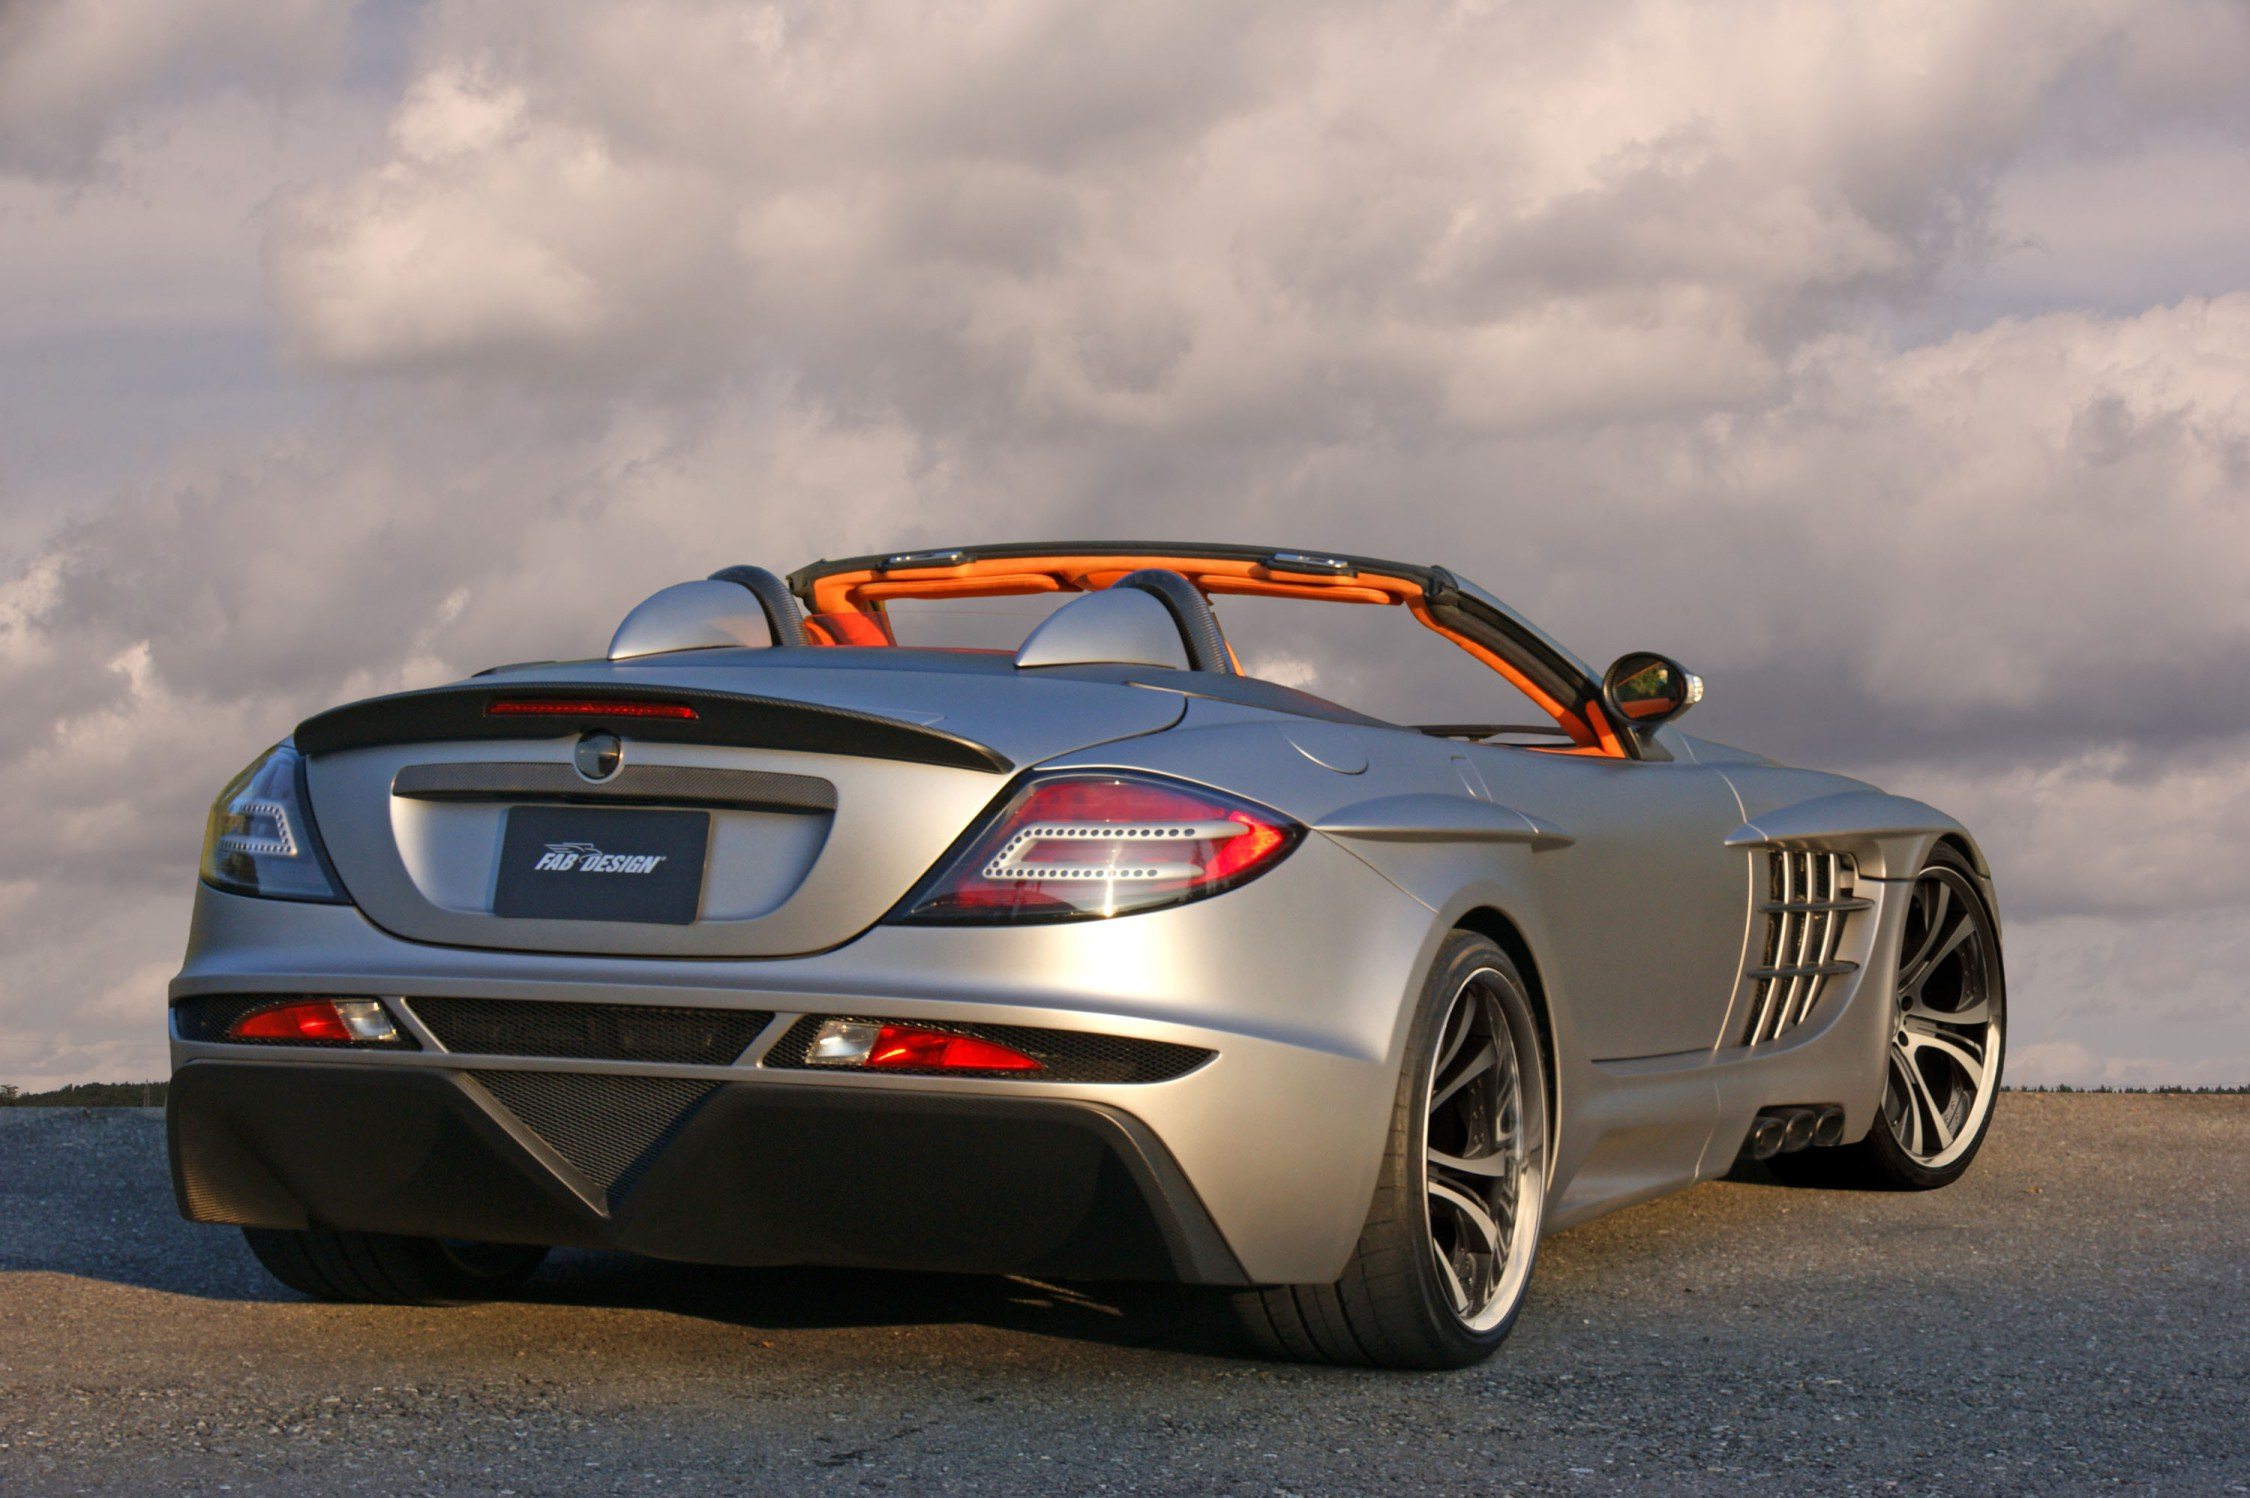 Mercedes Benz Rims >> Mercedes Benz SLR McLaren - FAB Design